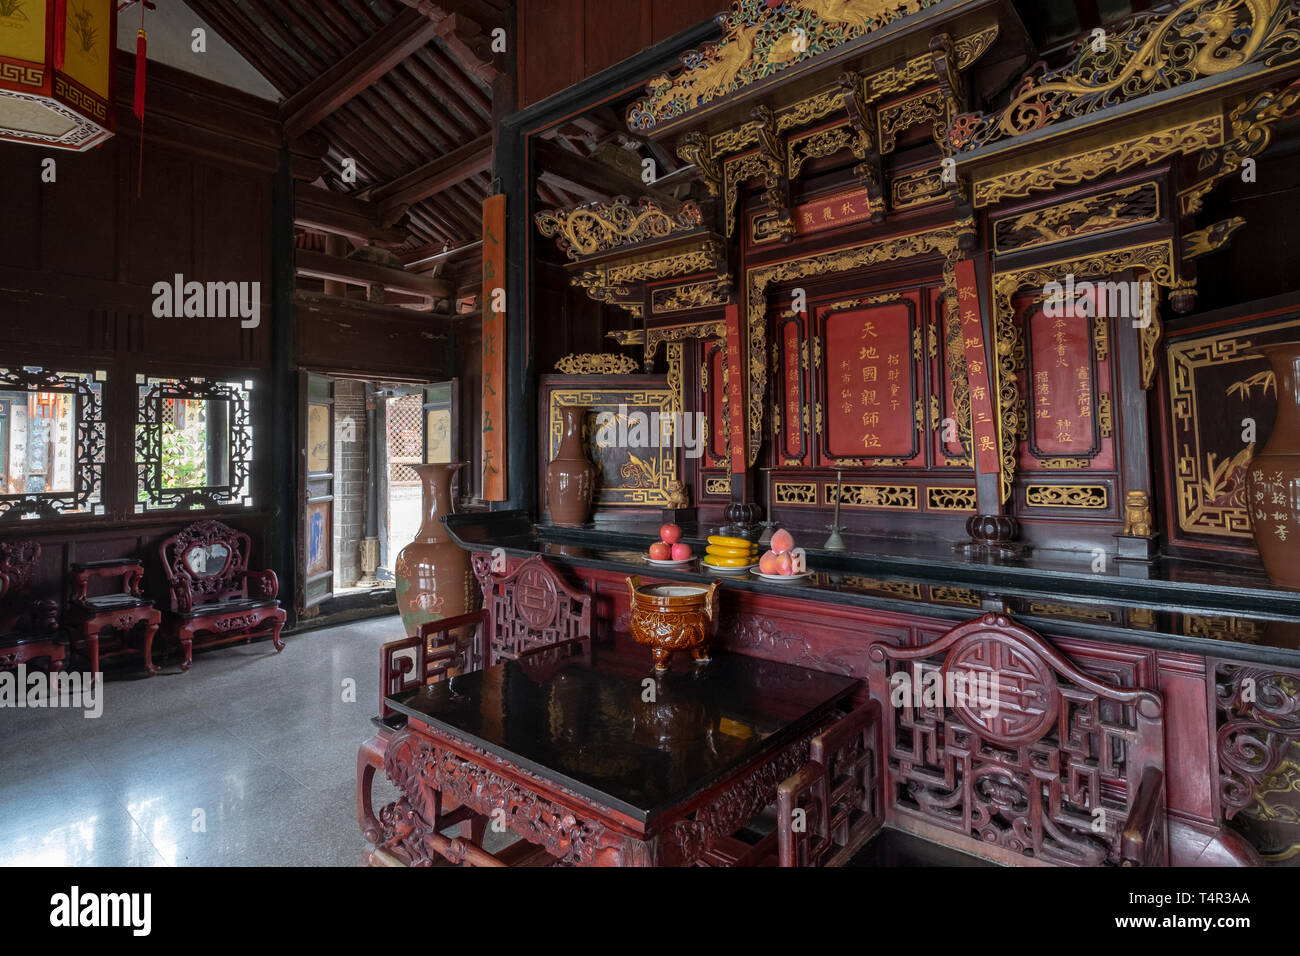 Interior of the Zhu Family house, Jianshui Ancient Town, Yunnan Province, China - Stock Image